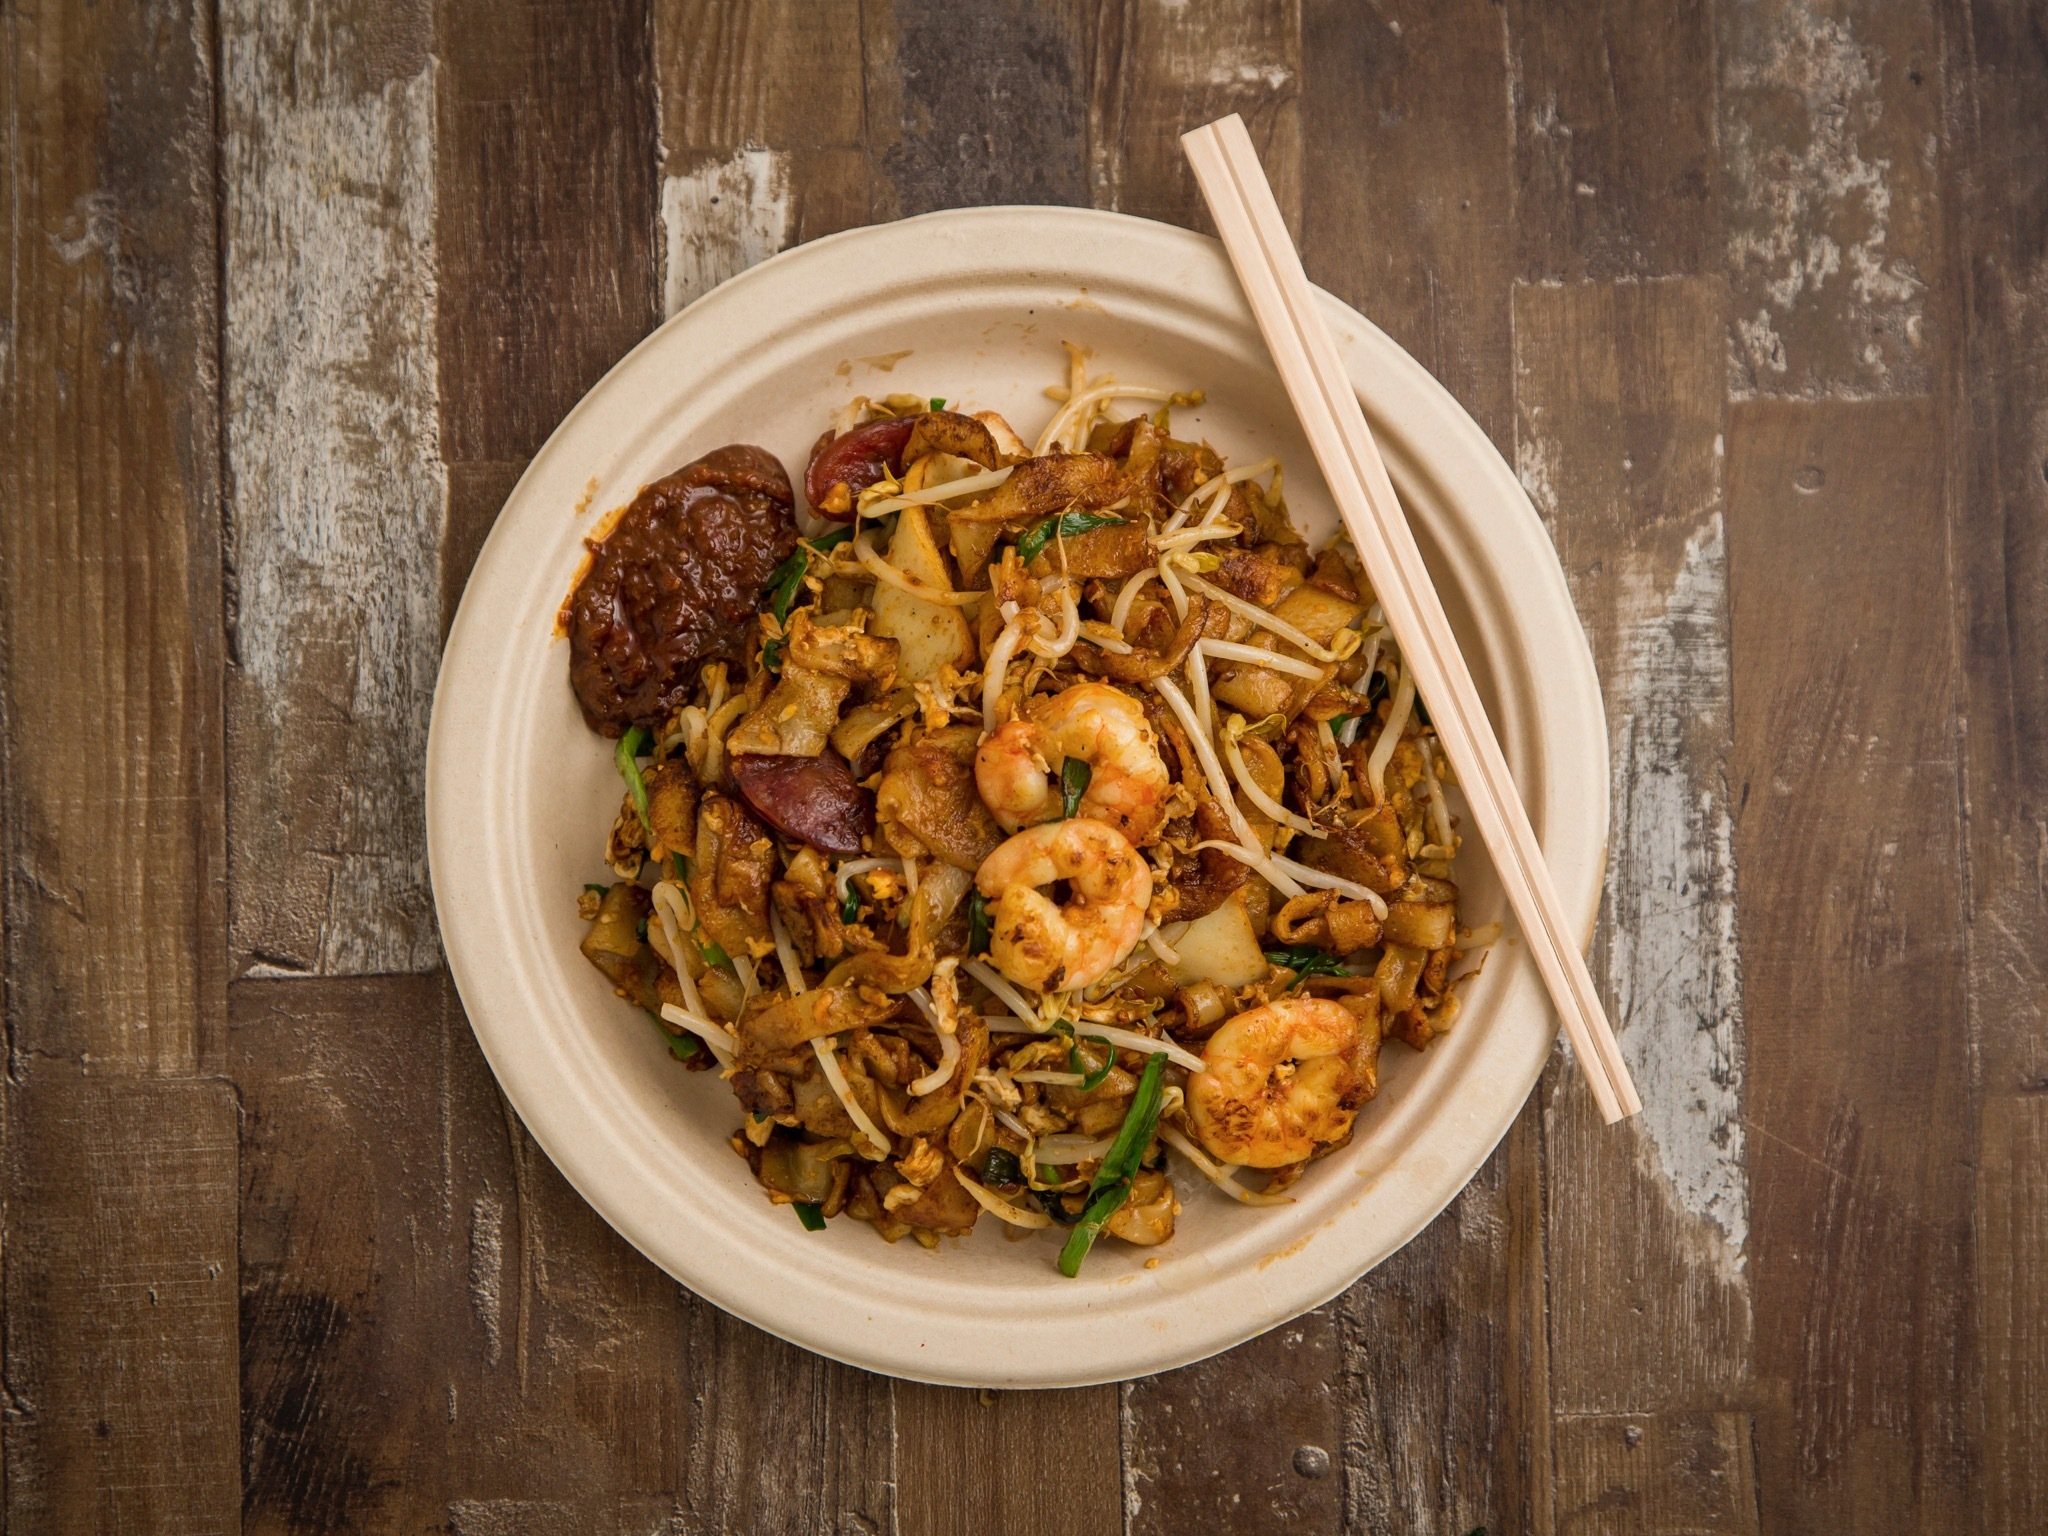 Penang char kway teow at Old Jim Kee at Spice Alley